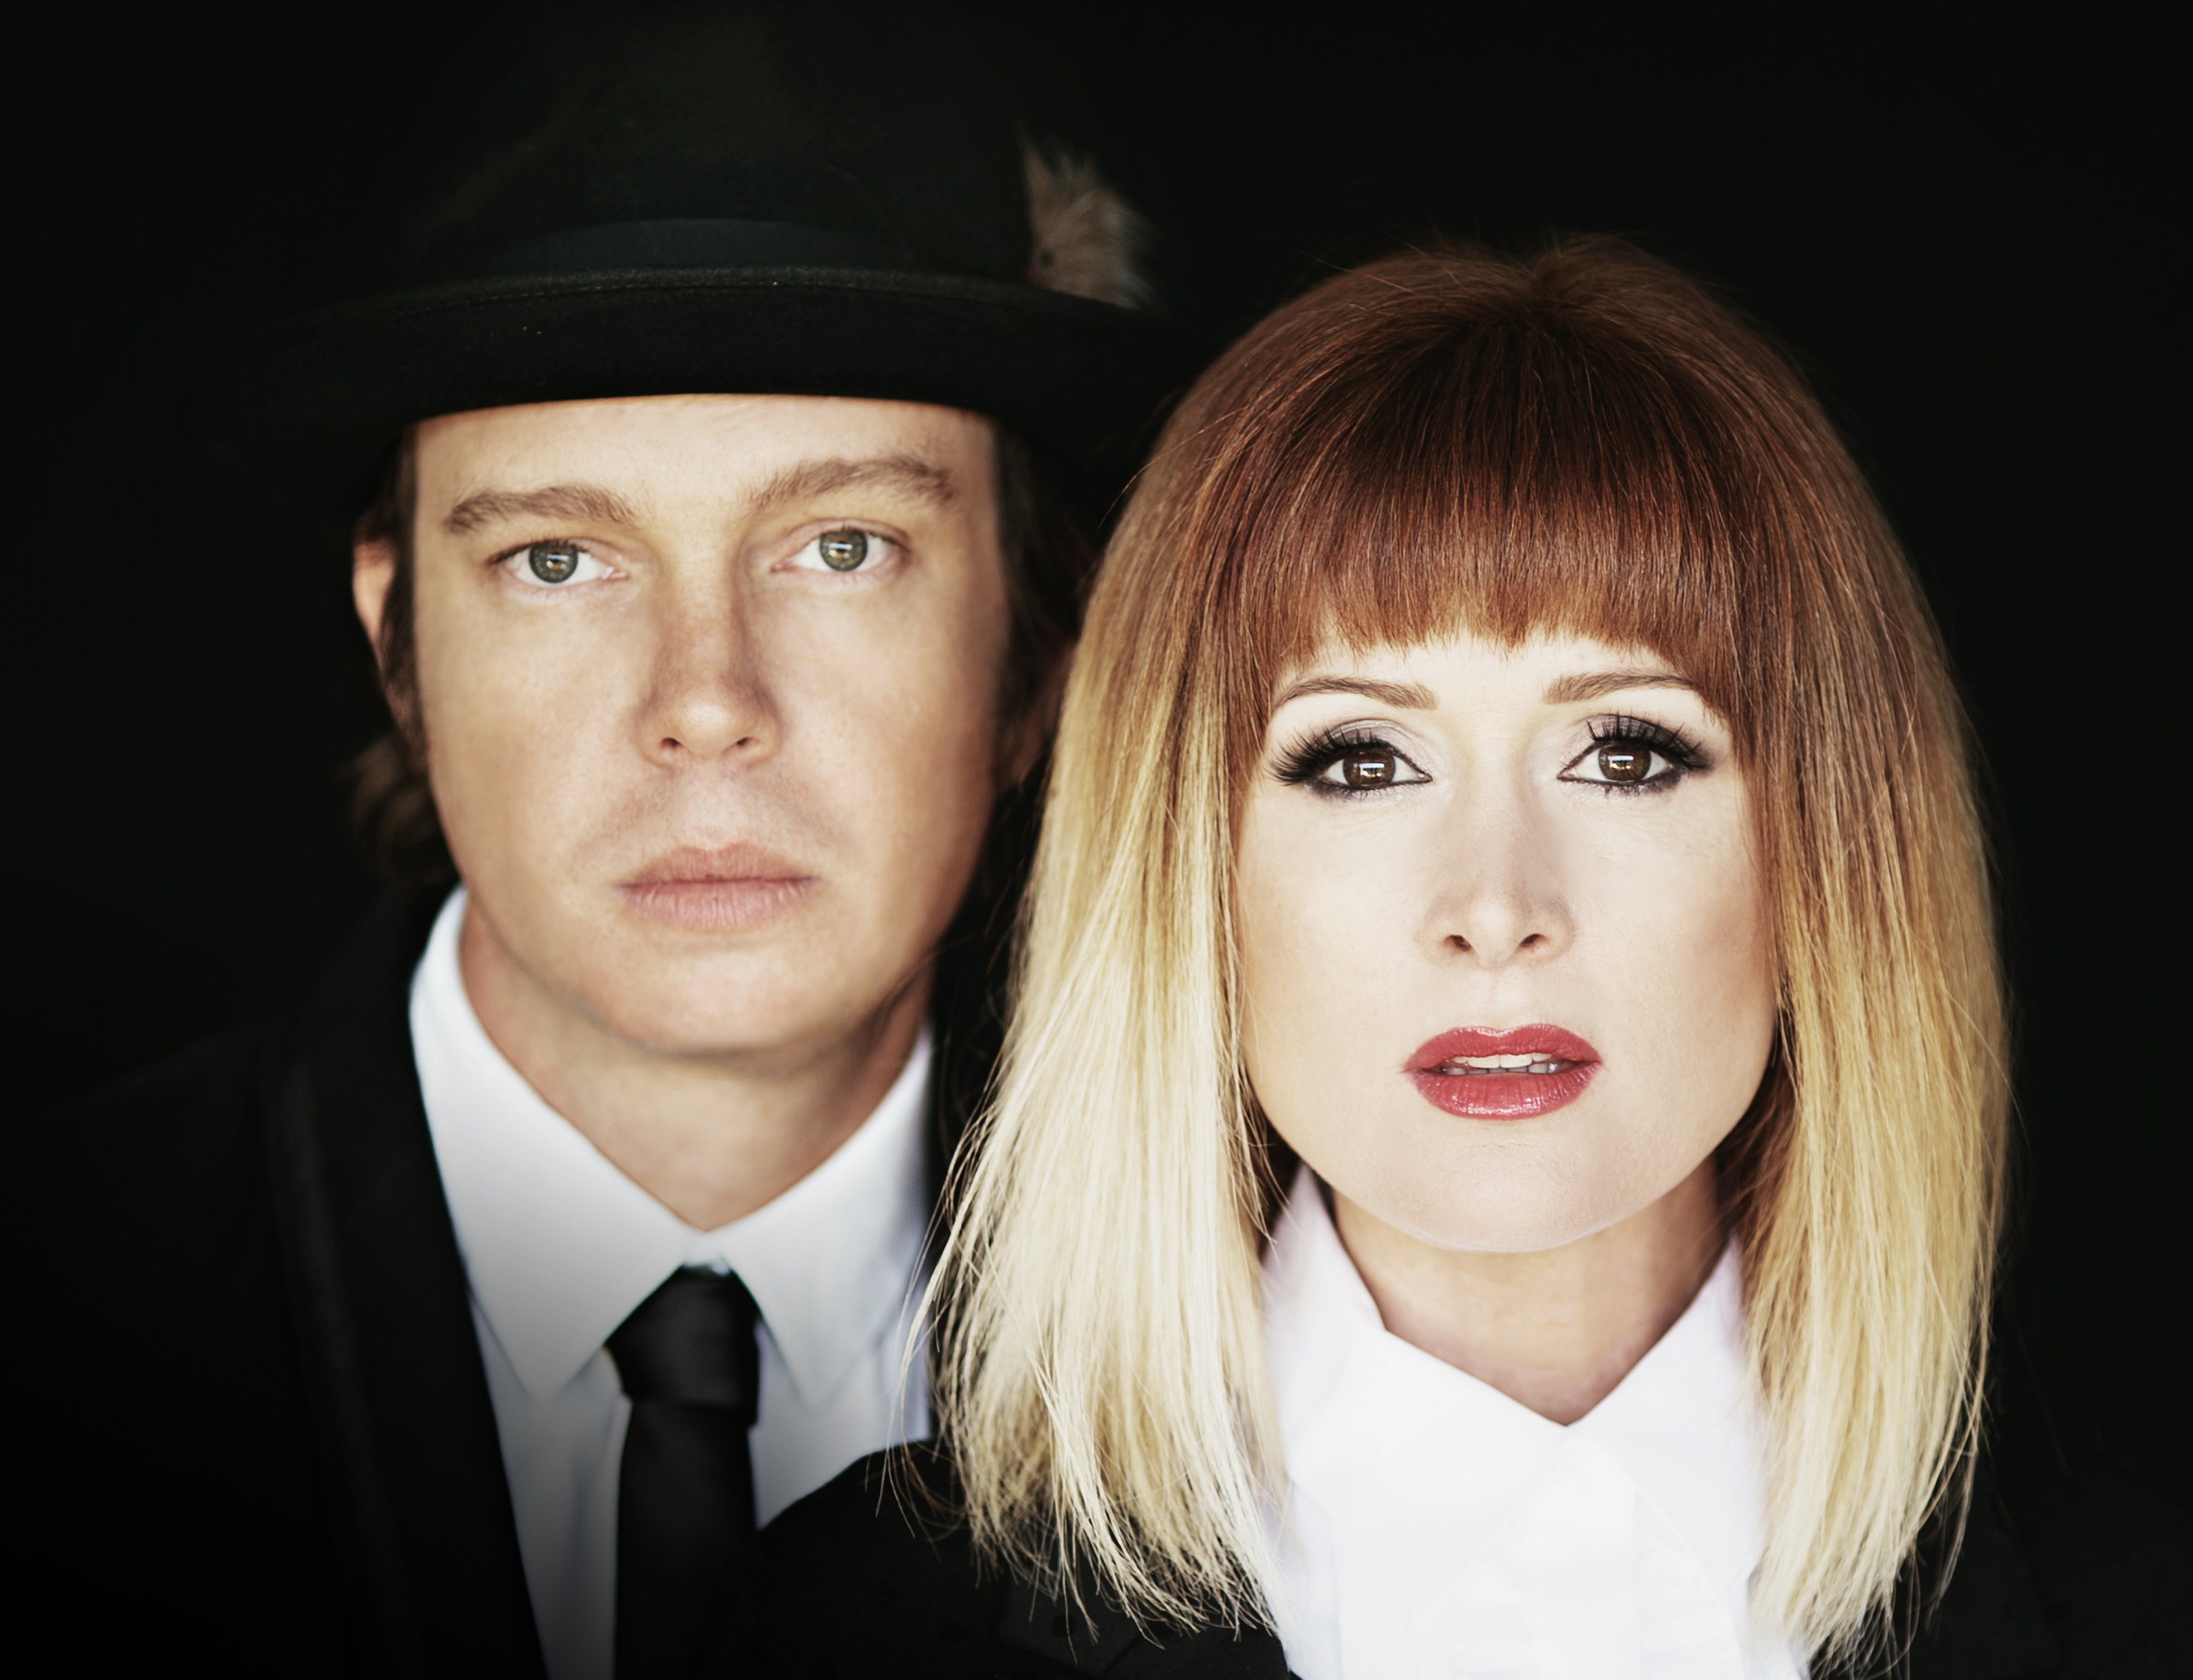 O'SHEA RELEASE 'I WILL NOT GIVE UP' FOLLOWING THEIR FIRST ARIA NOMINATION